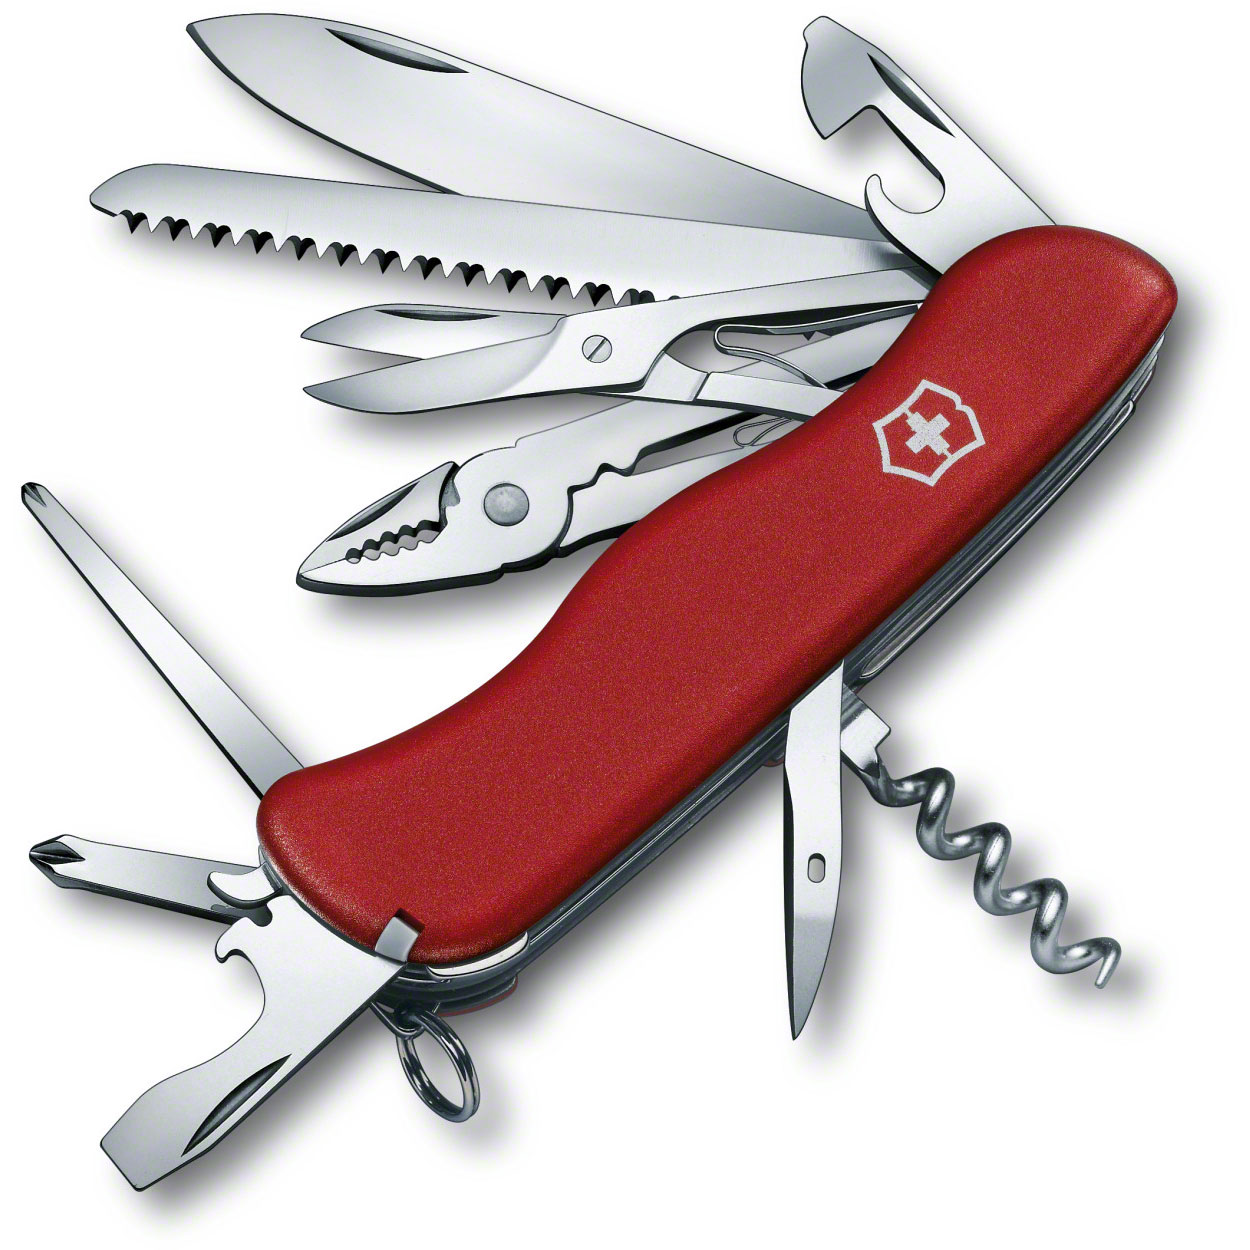 Victorinox Swiss Army Hercules Multi-Tool, Red, 4.37 inch Closed